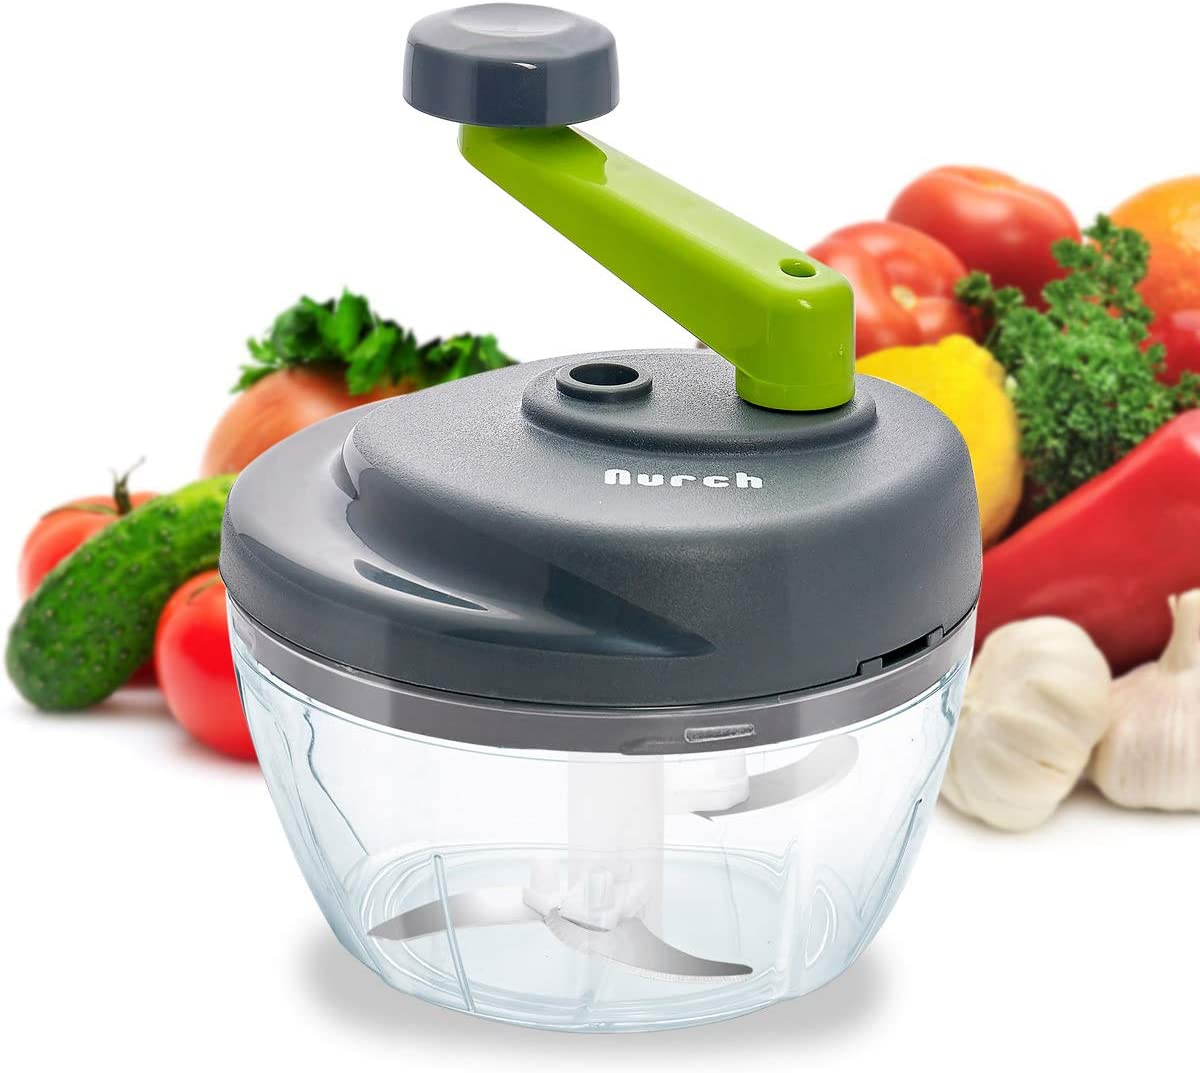 Nurch Manual Food Chopper, Easy to Clean Hand Food Processor, ExpressVegetableChopper/Dicer/CutterforOnion,Meat,Nuts,SalsaMaker